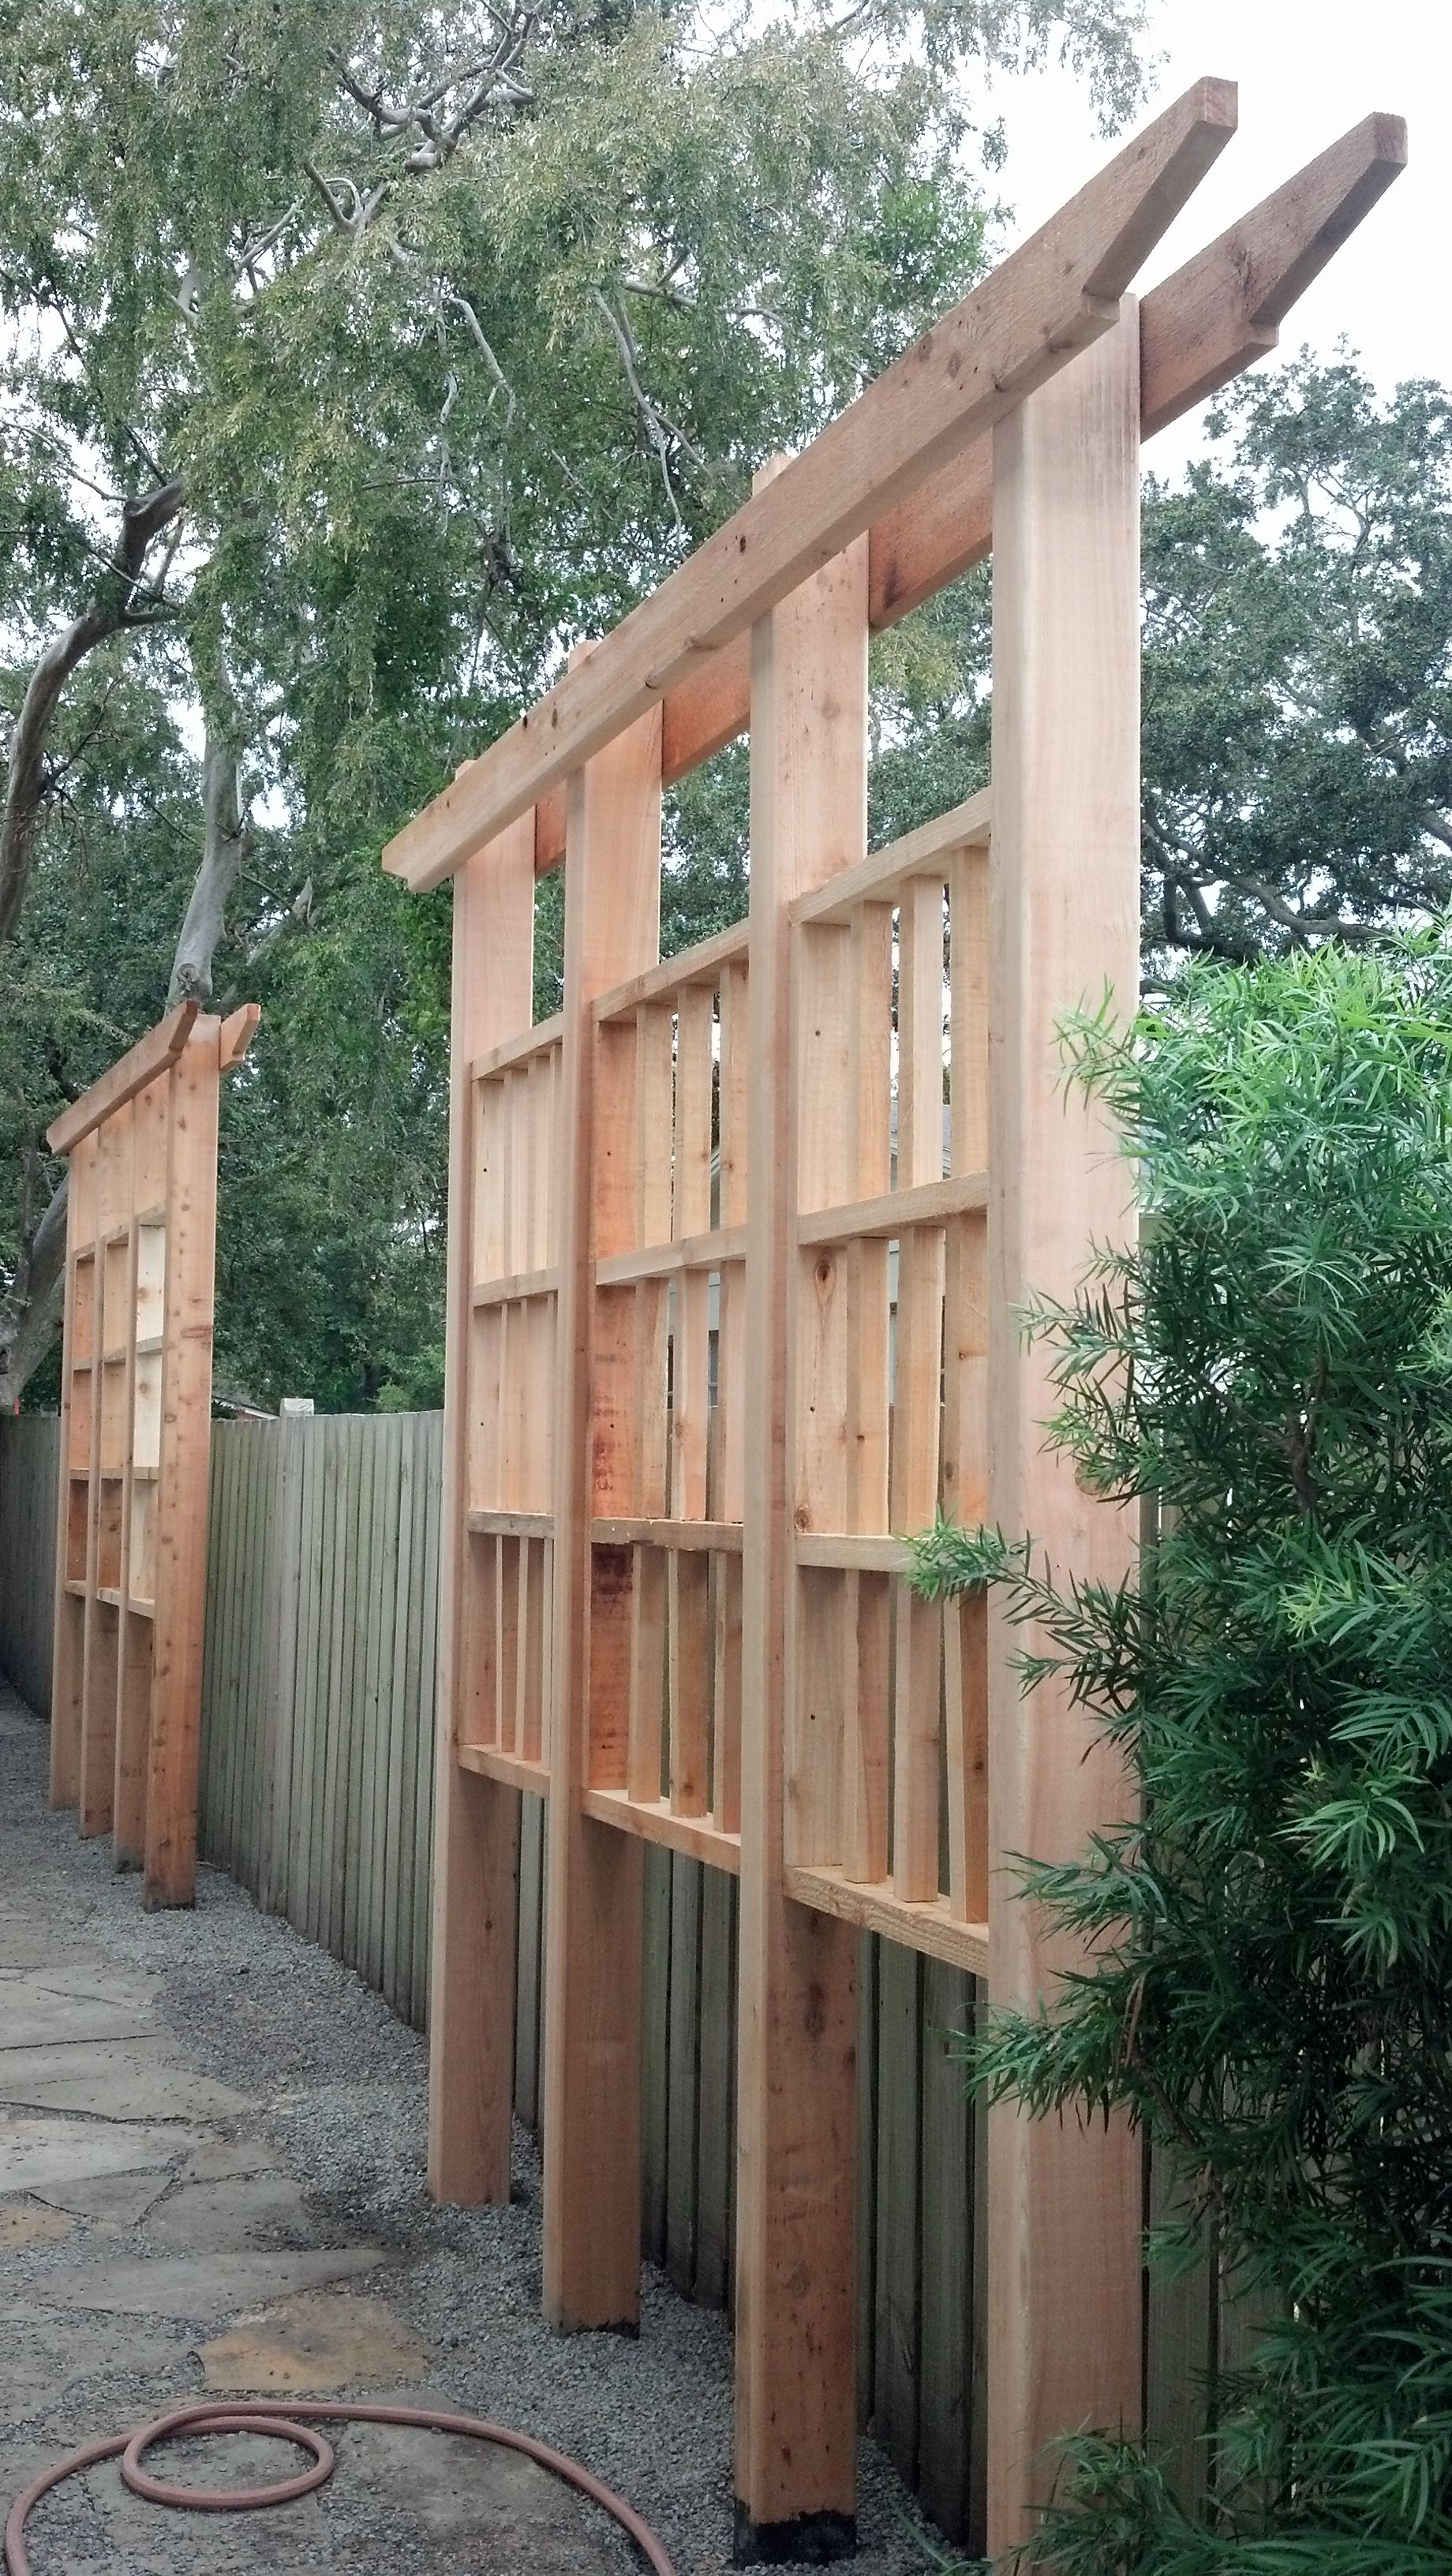 cedar privacy trellis privacy landscaping backyard on inexpensive way to build a wood privacy fence diy guide for 2020 id=55519